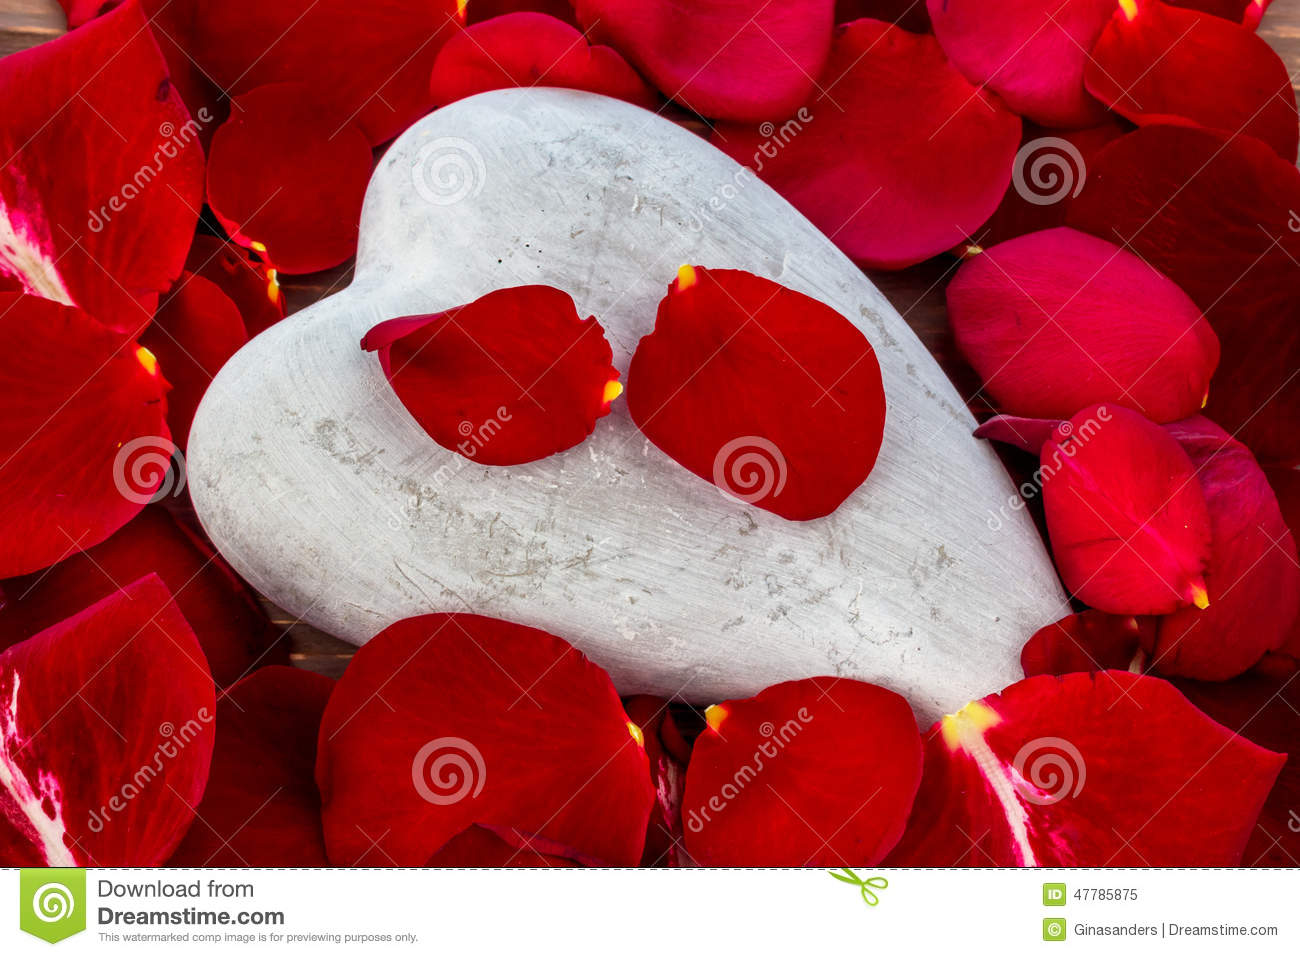 Red Roses With Heart Love For Valentine S Day Stock Image Image